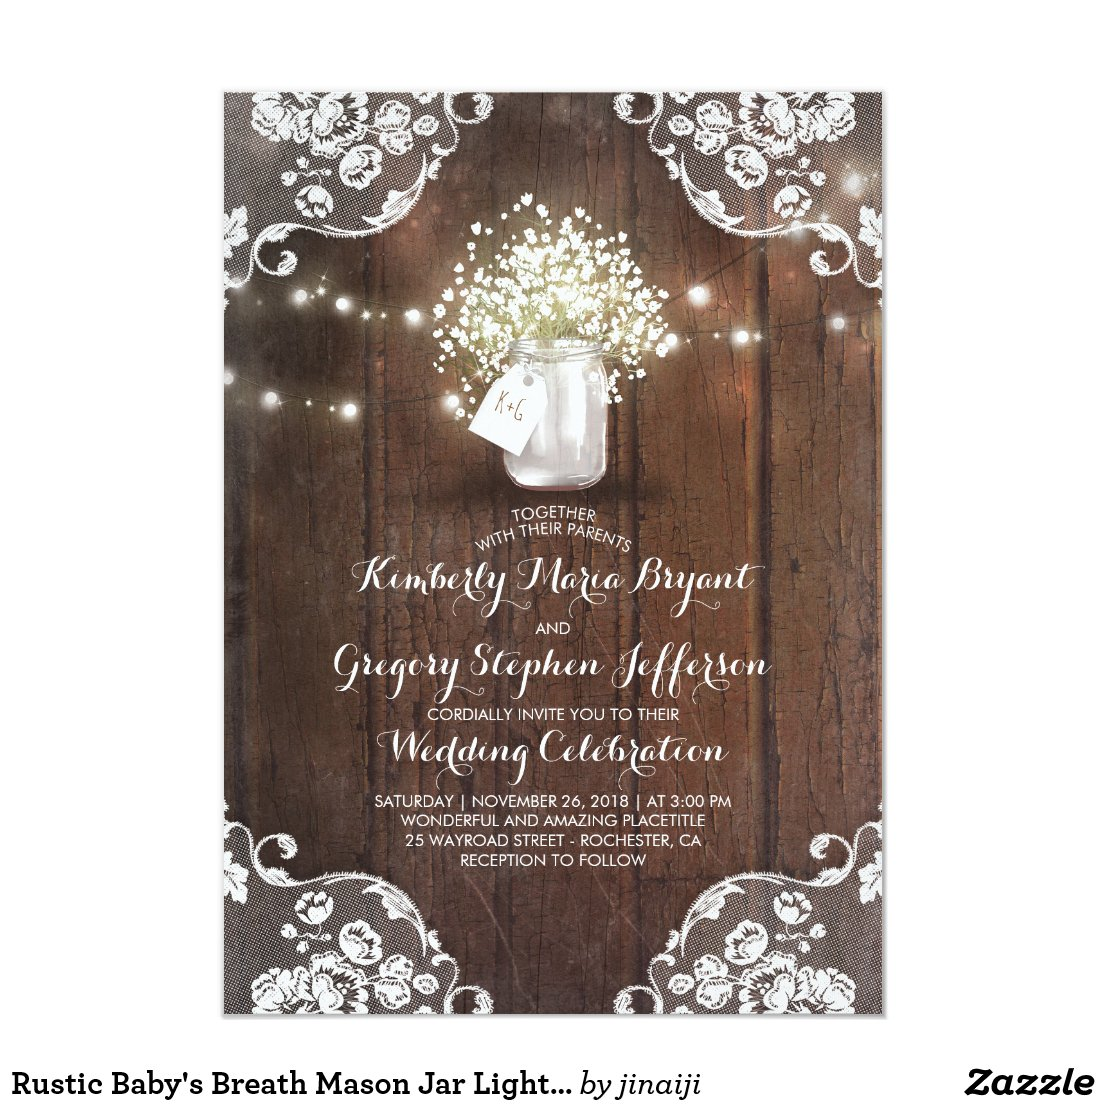 Rustic Baby's Breath Wedding Invitation with White Floral Lace